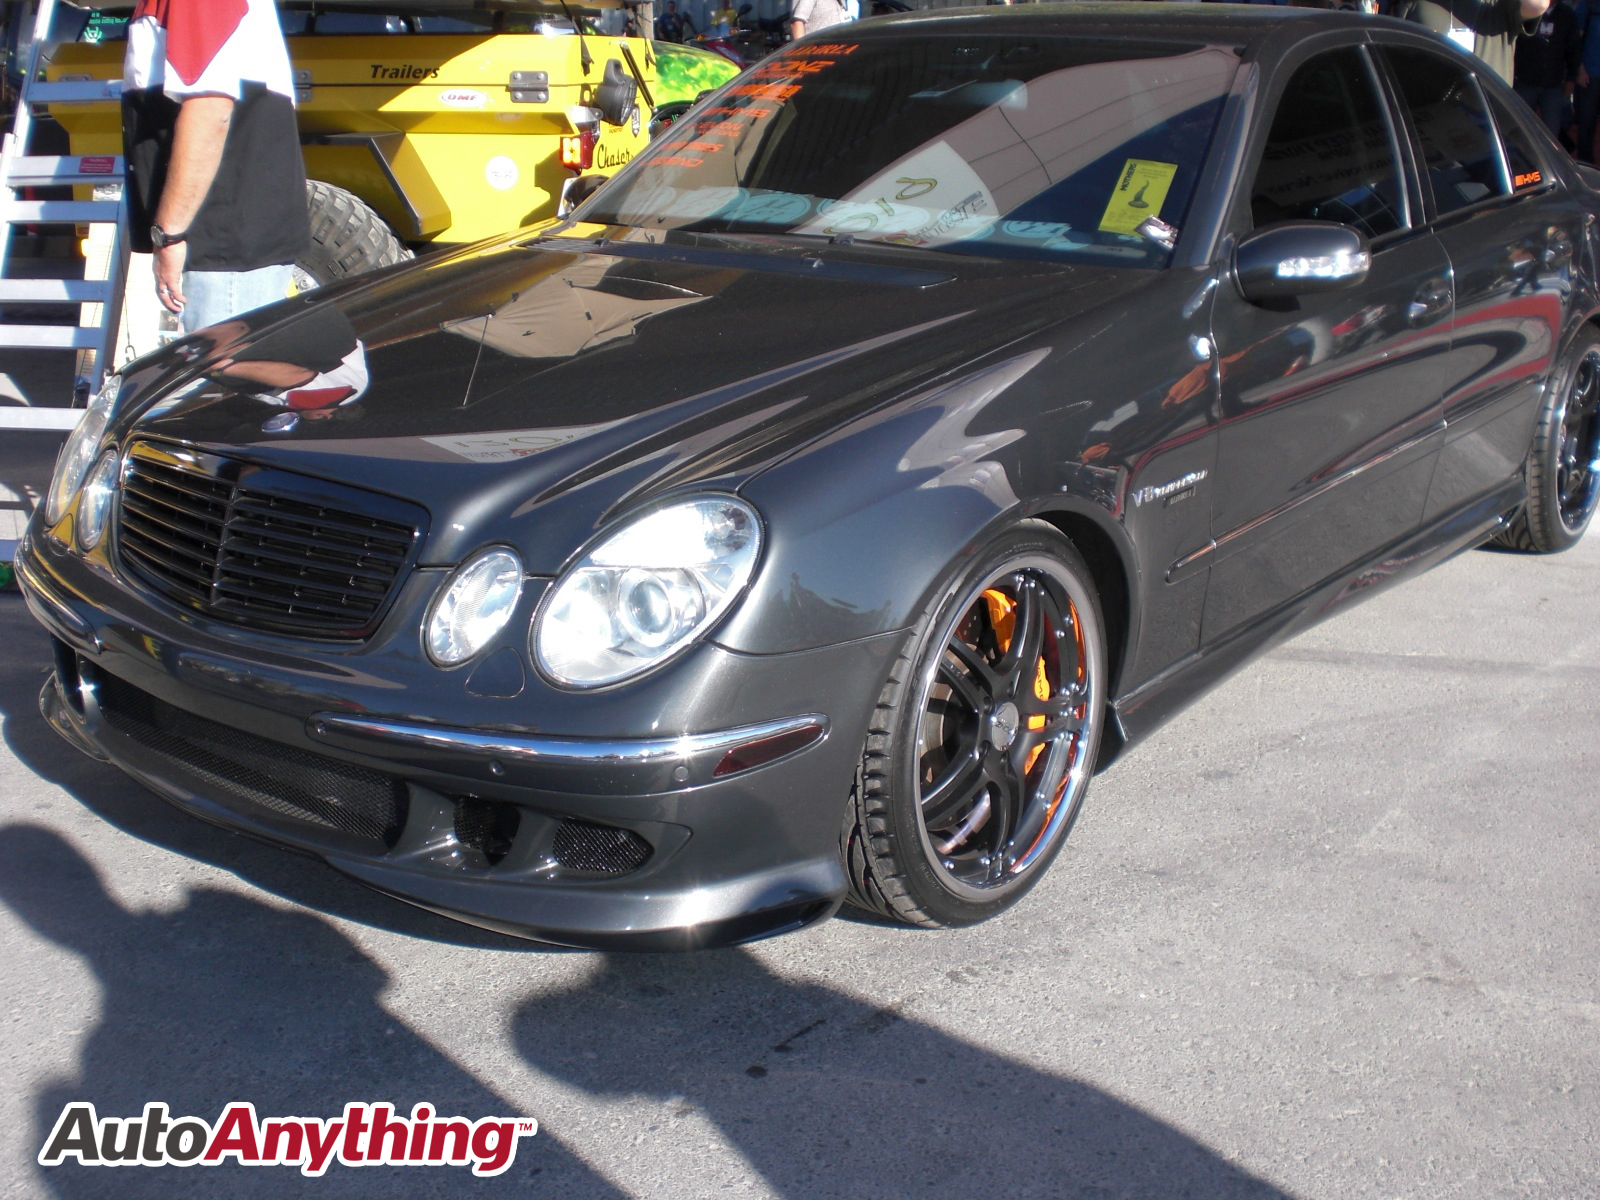 Mercedes benz e class sema 2008 autoanything coupons for Promo code for mercedes benz accessories